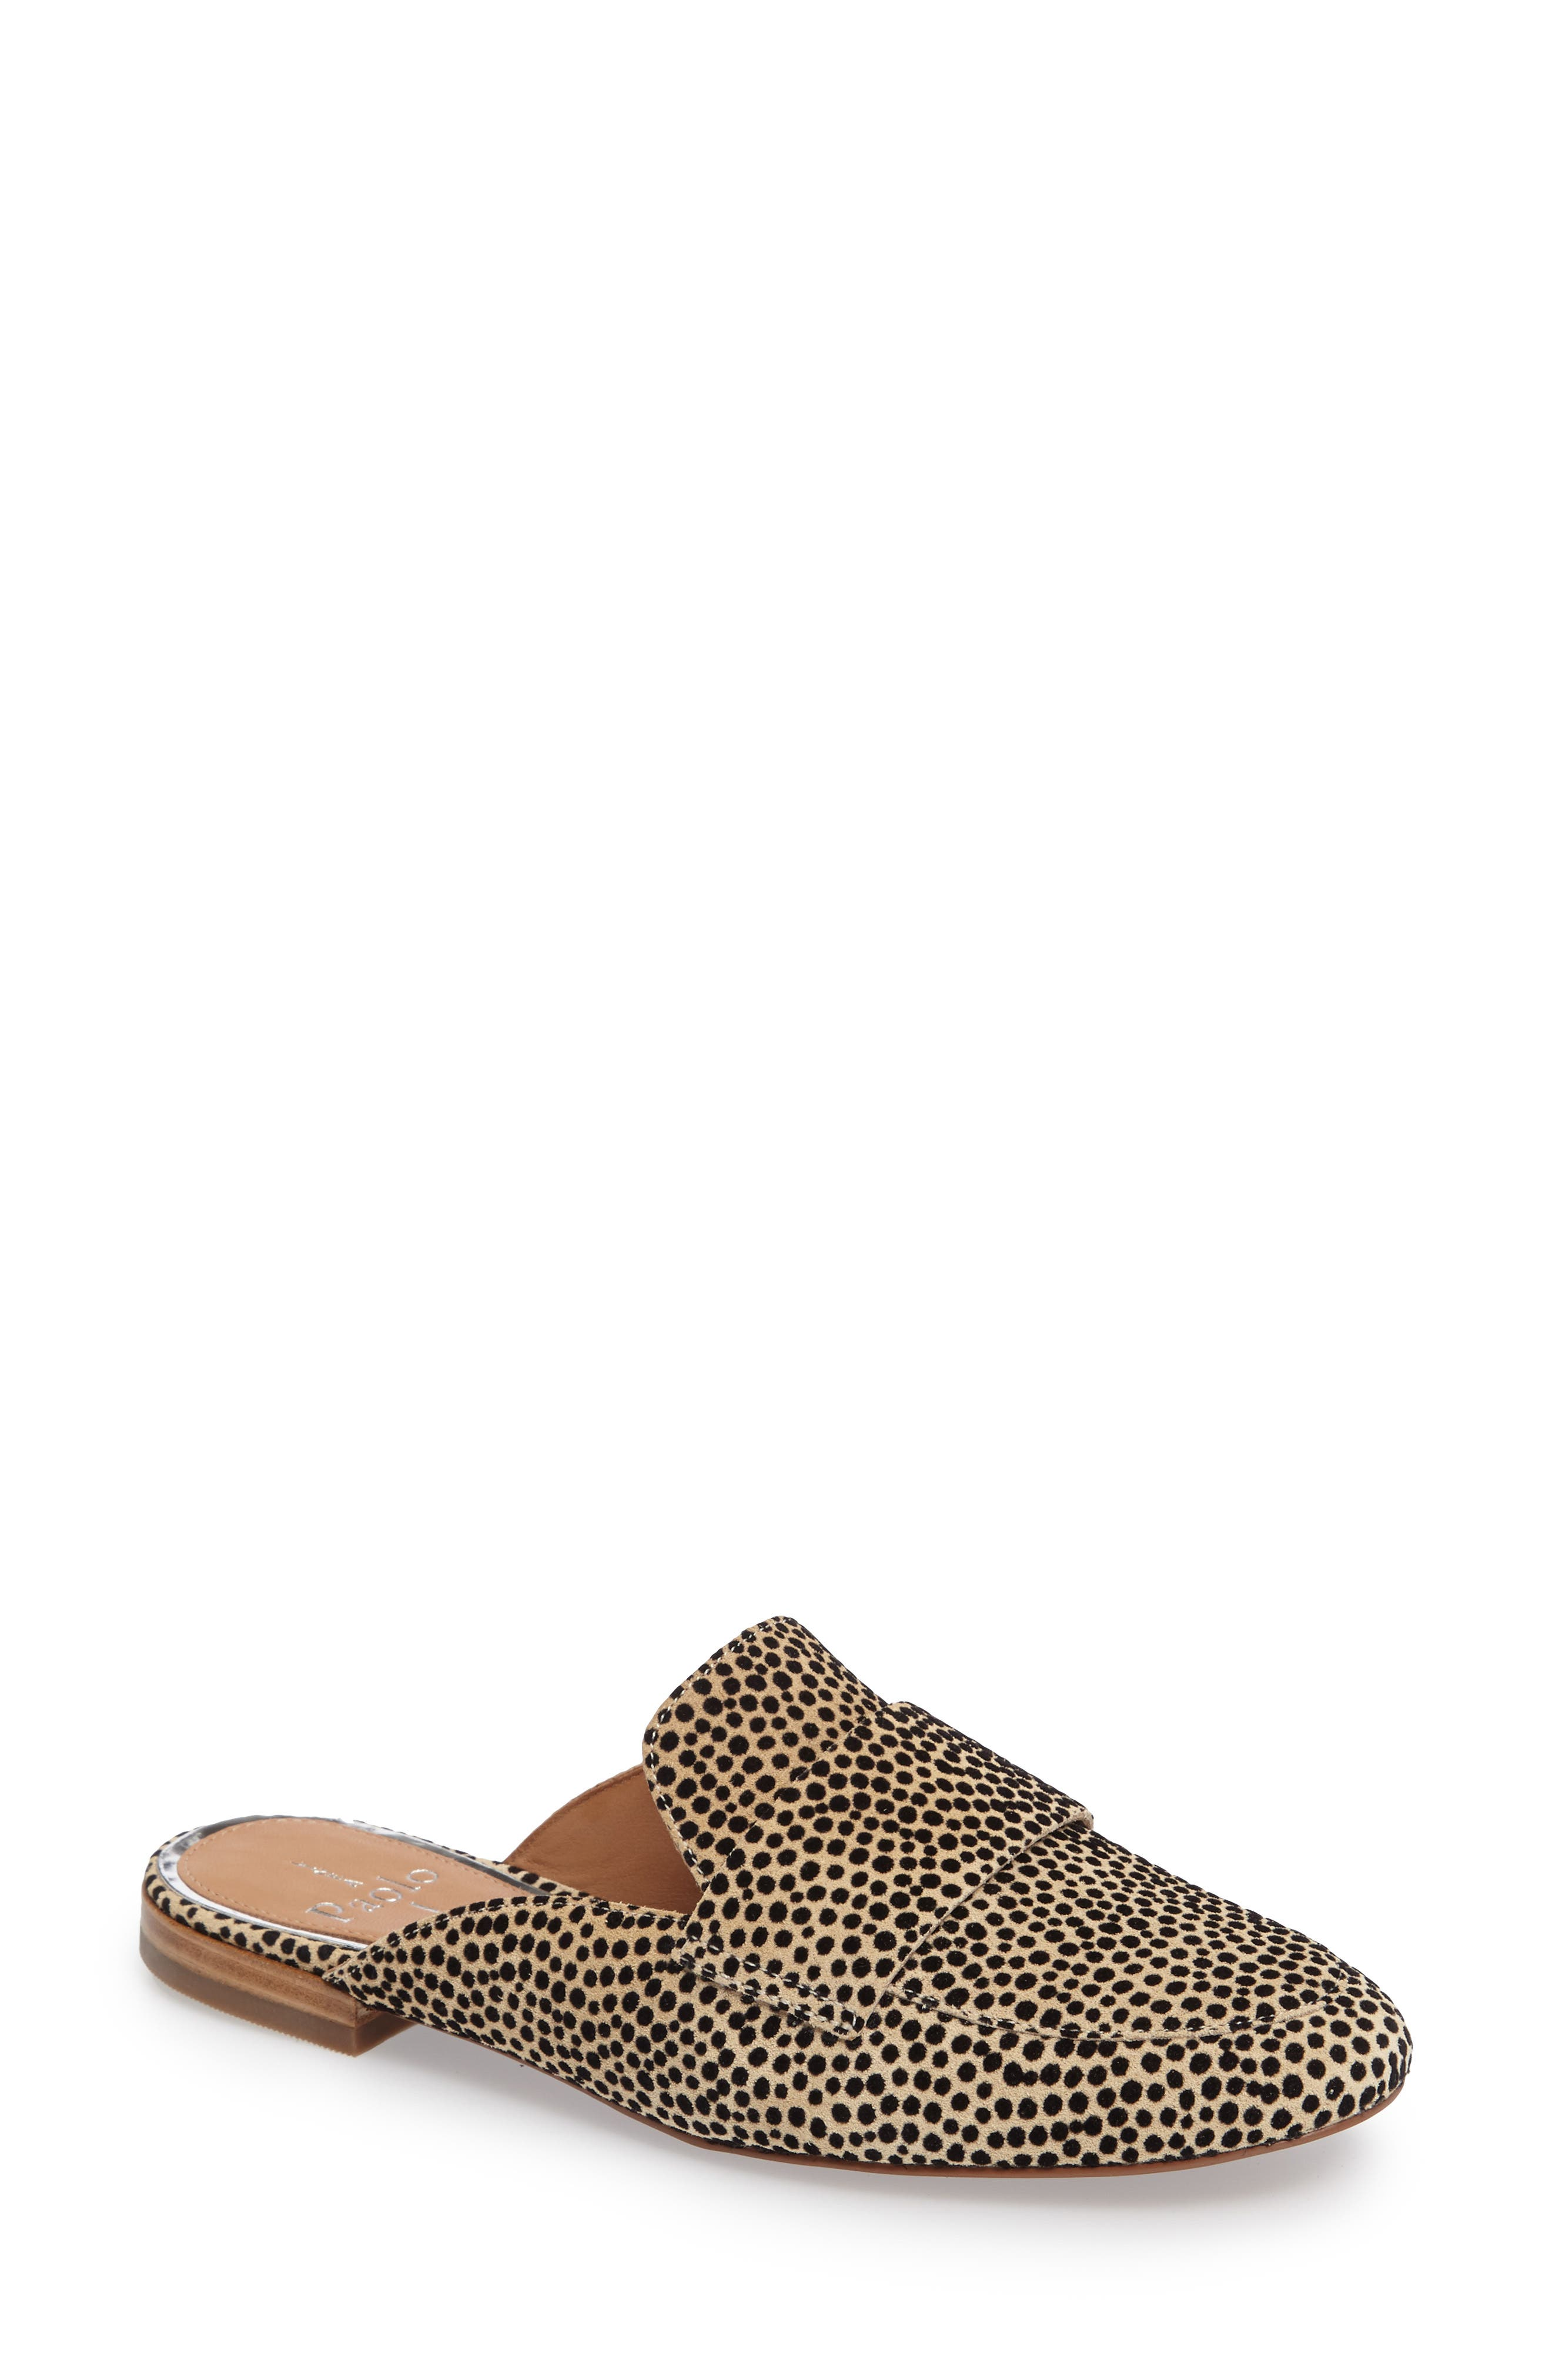 Alternate Image 1 Selected - Linea Paolo Annie Loafer Mule (Women)